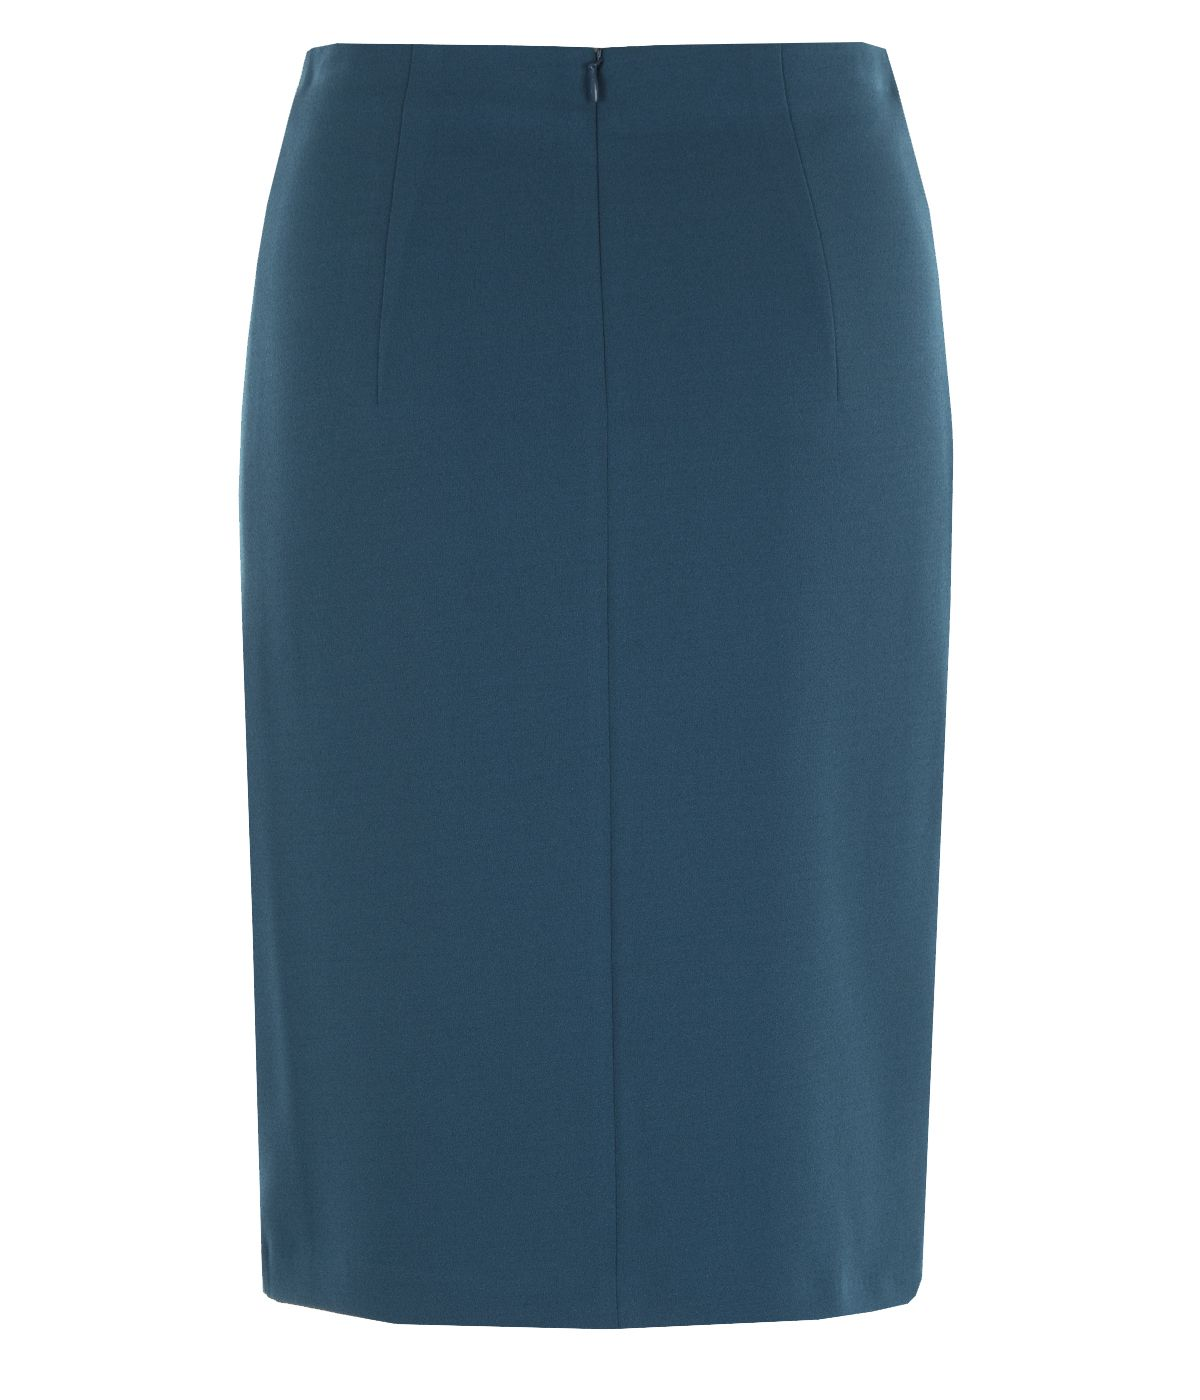 Pencil skirt with decorative element 1